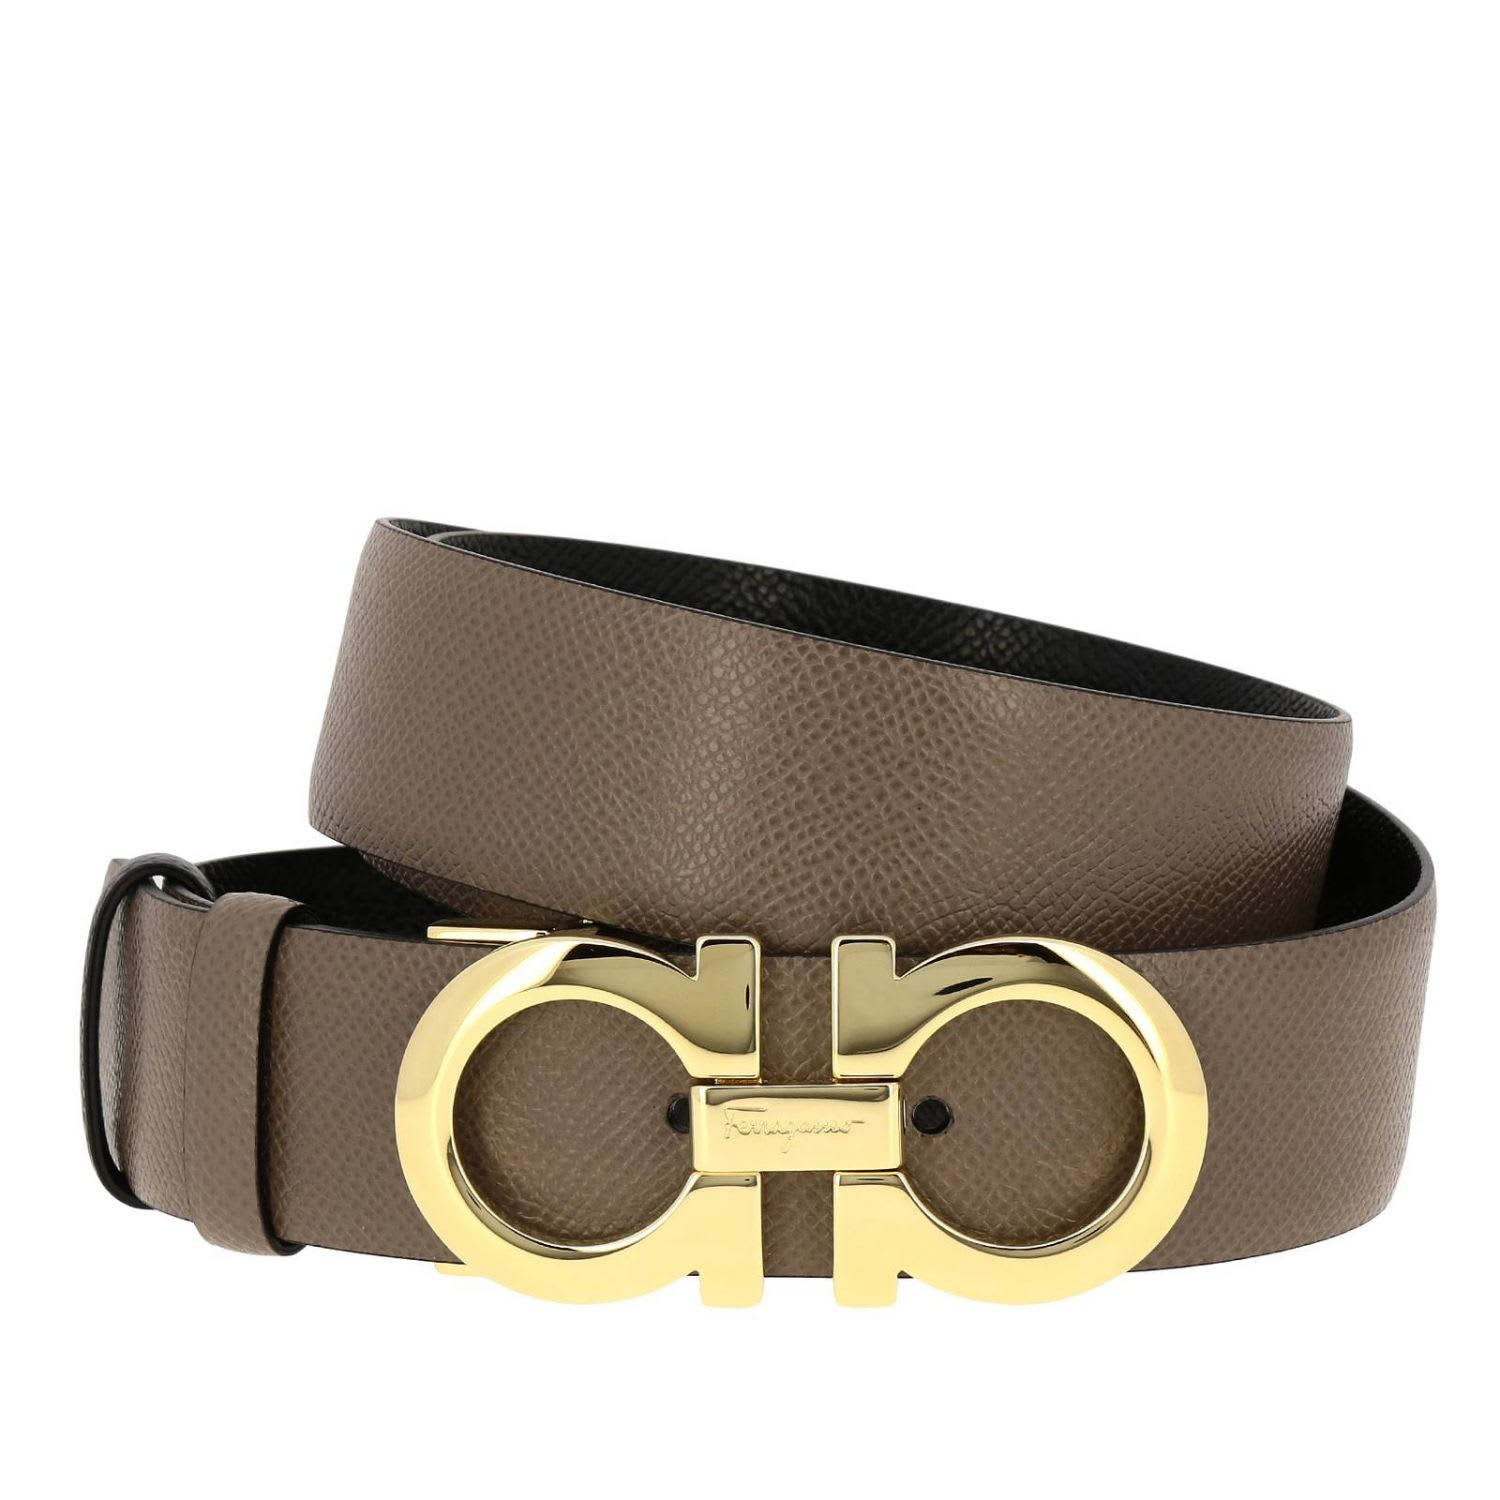 Salvatore Ferragamo Salvatore Ferragamo Belt Adjustable ...